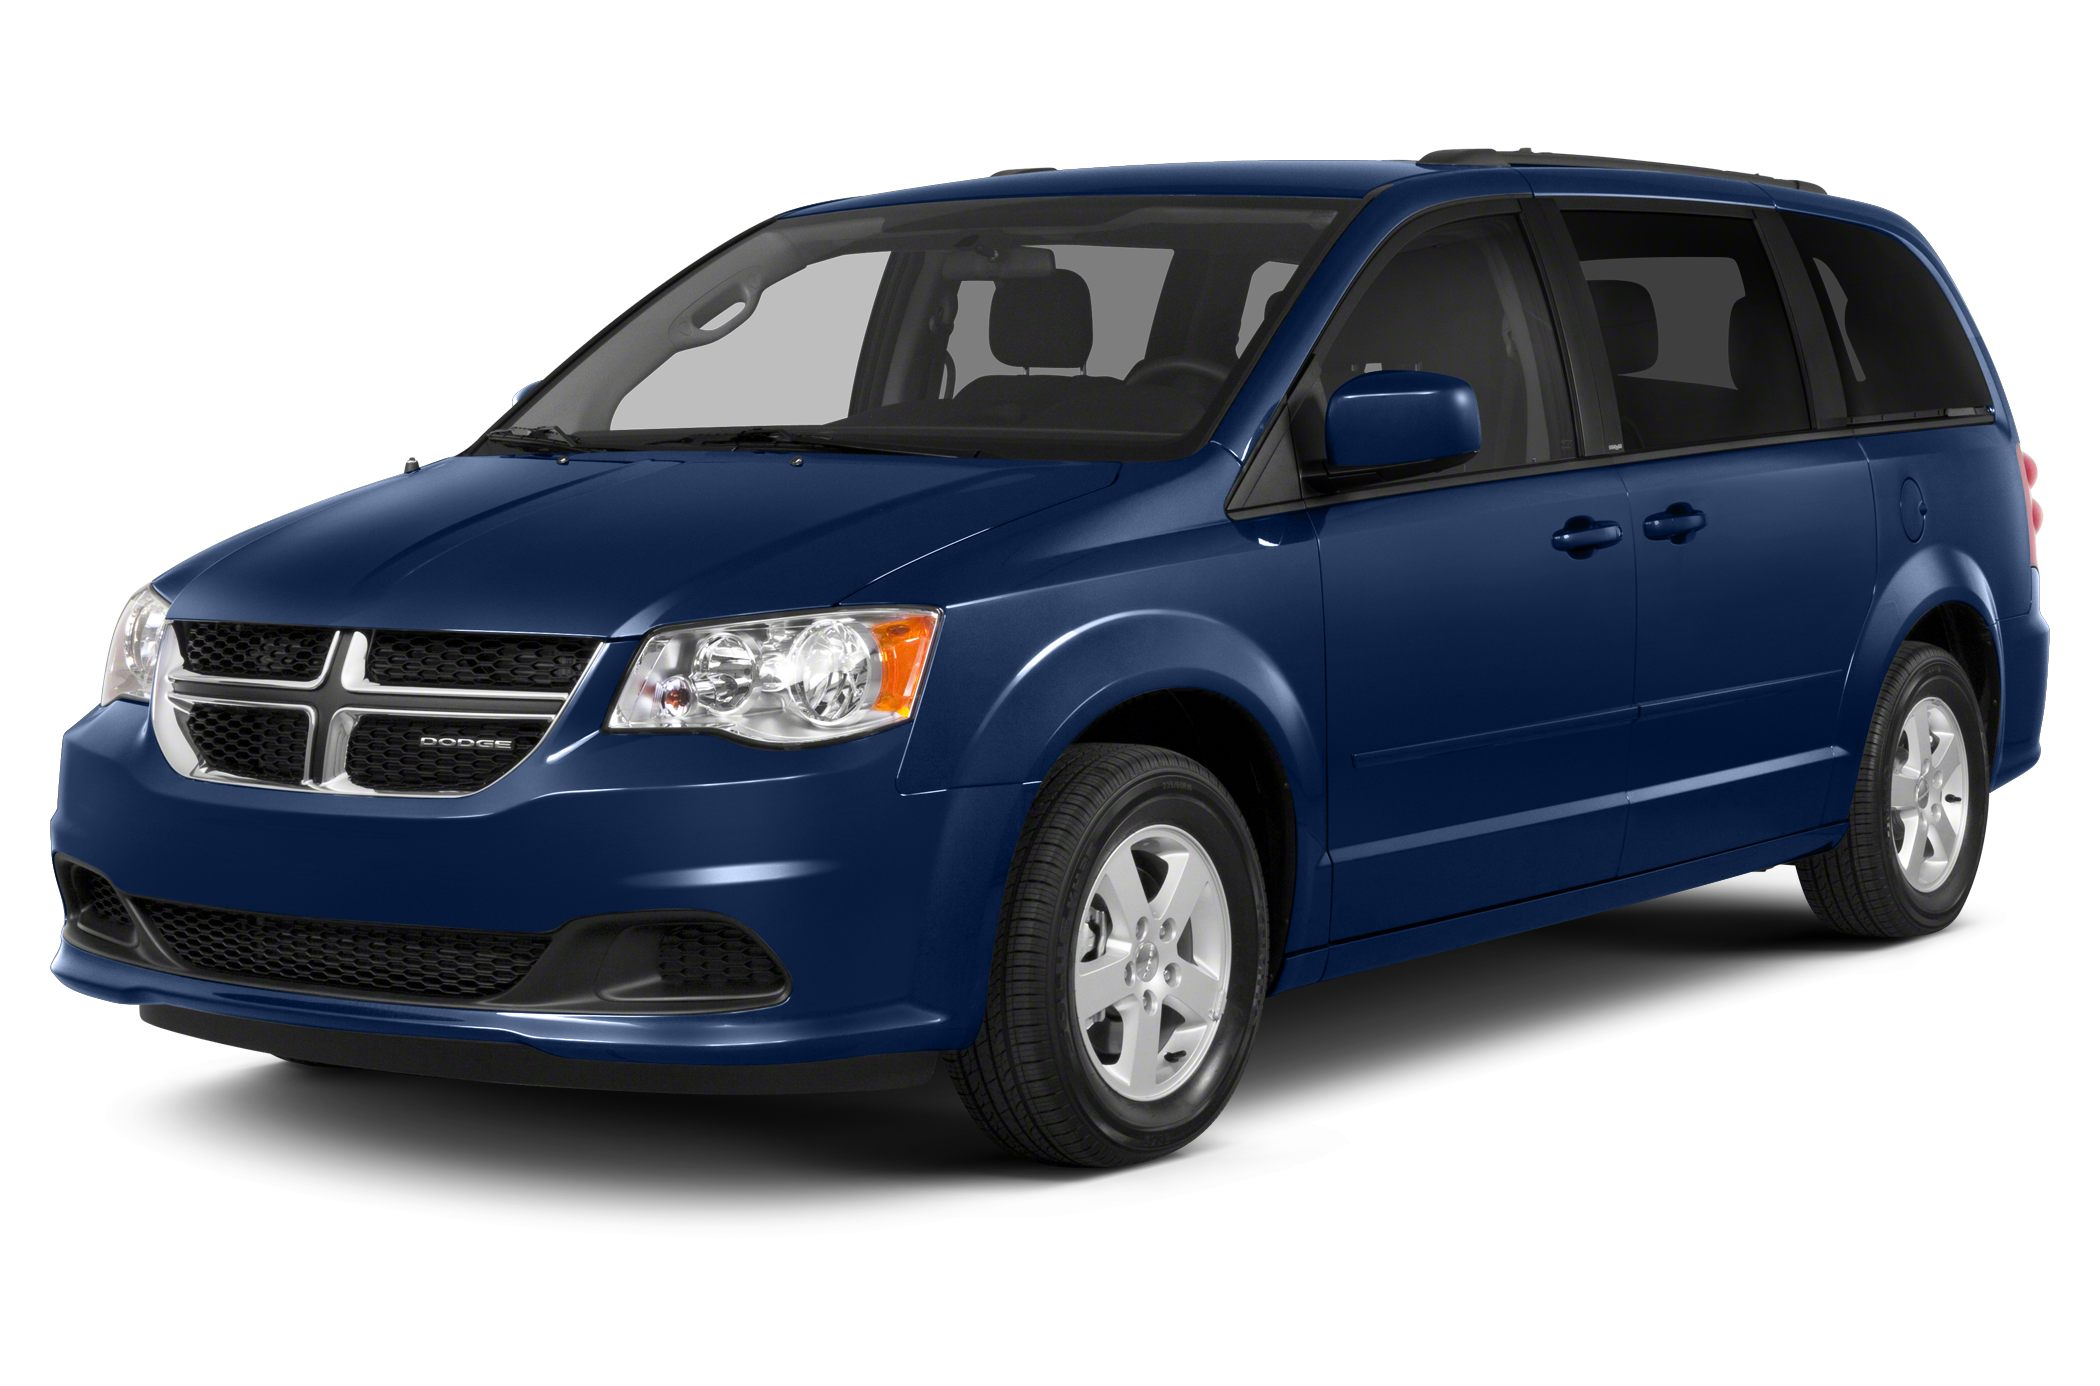 2013 Dodge Grand Caravan SXT Minivan for sale in Everett for $16,783 with 69,785 miles